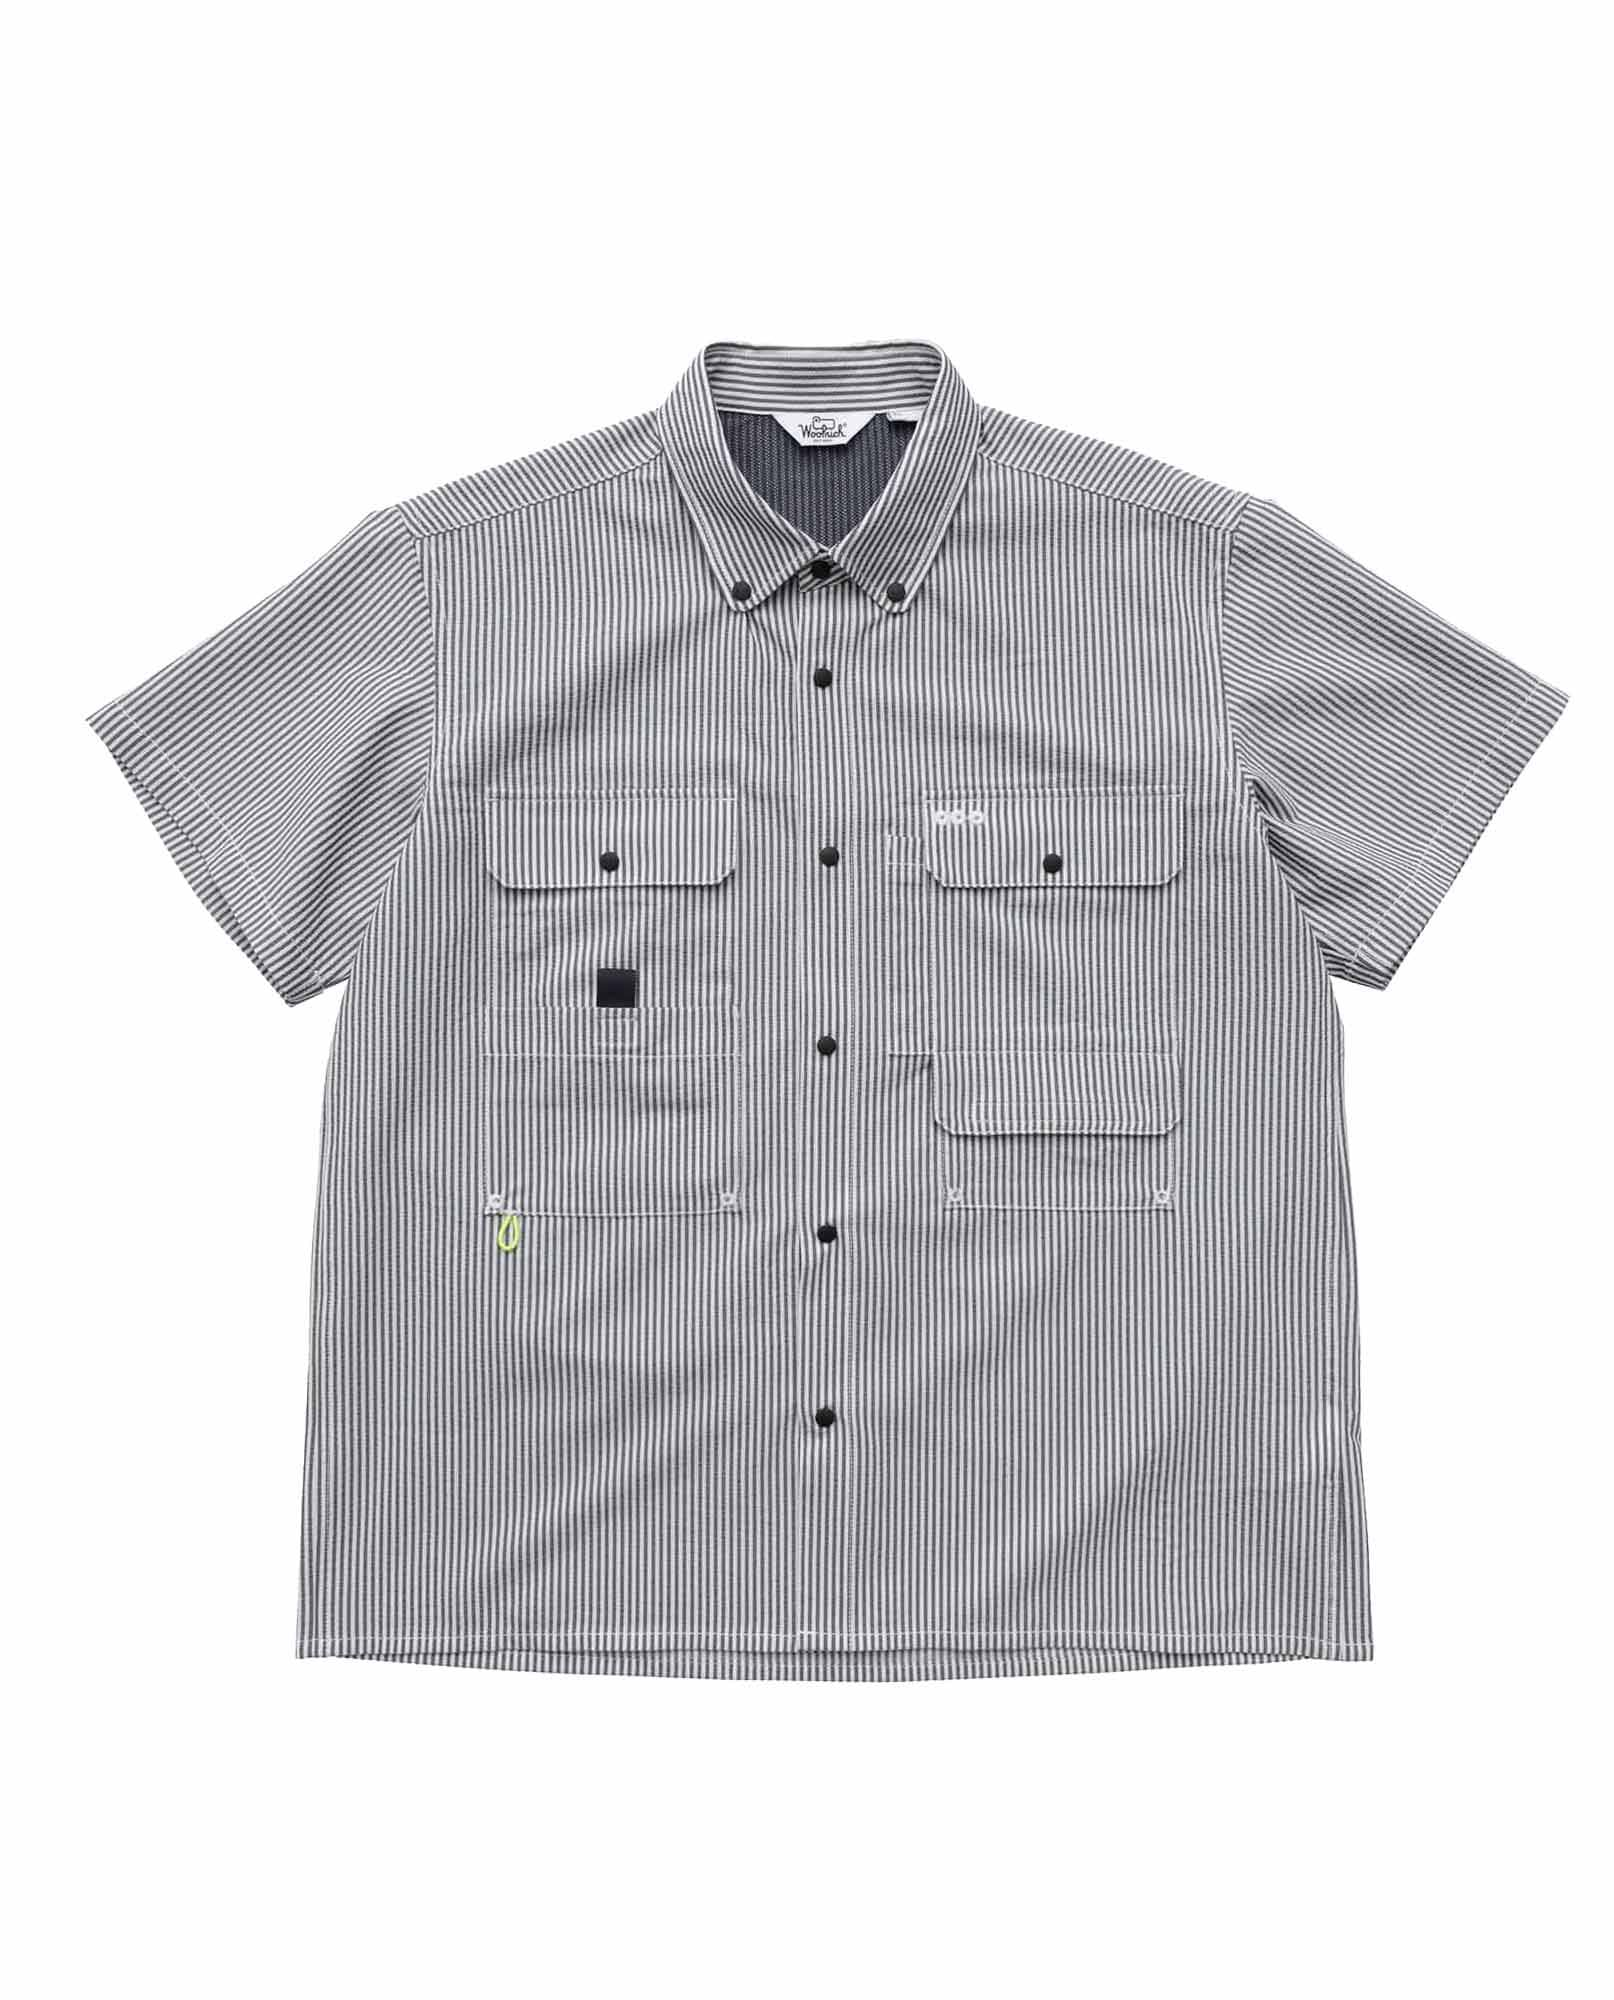 PRIMEFLEX FISHING SHIRT